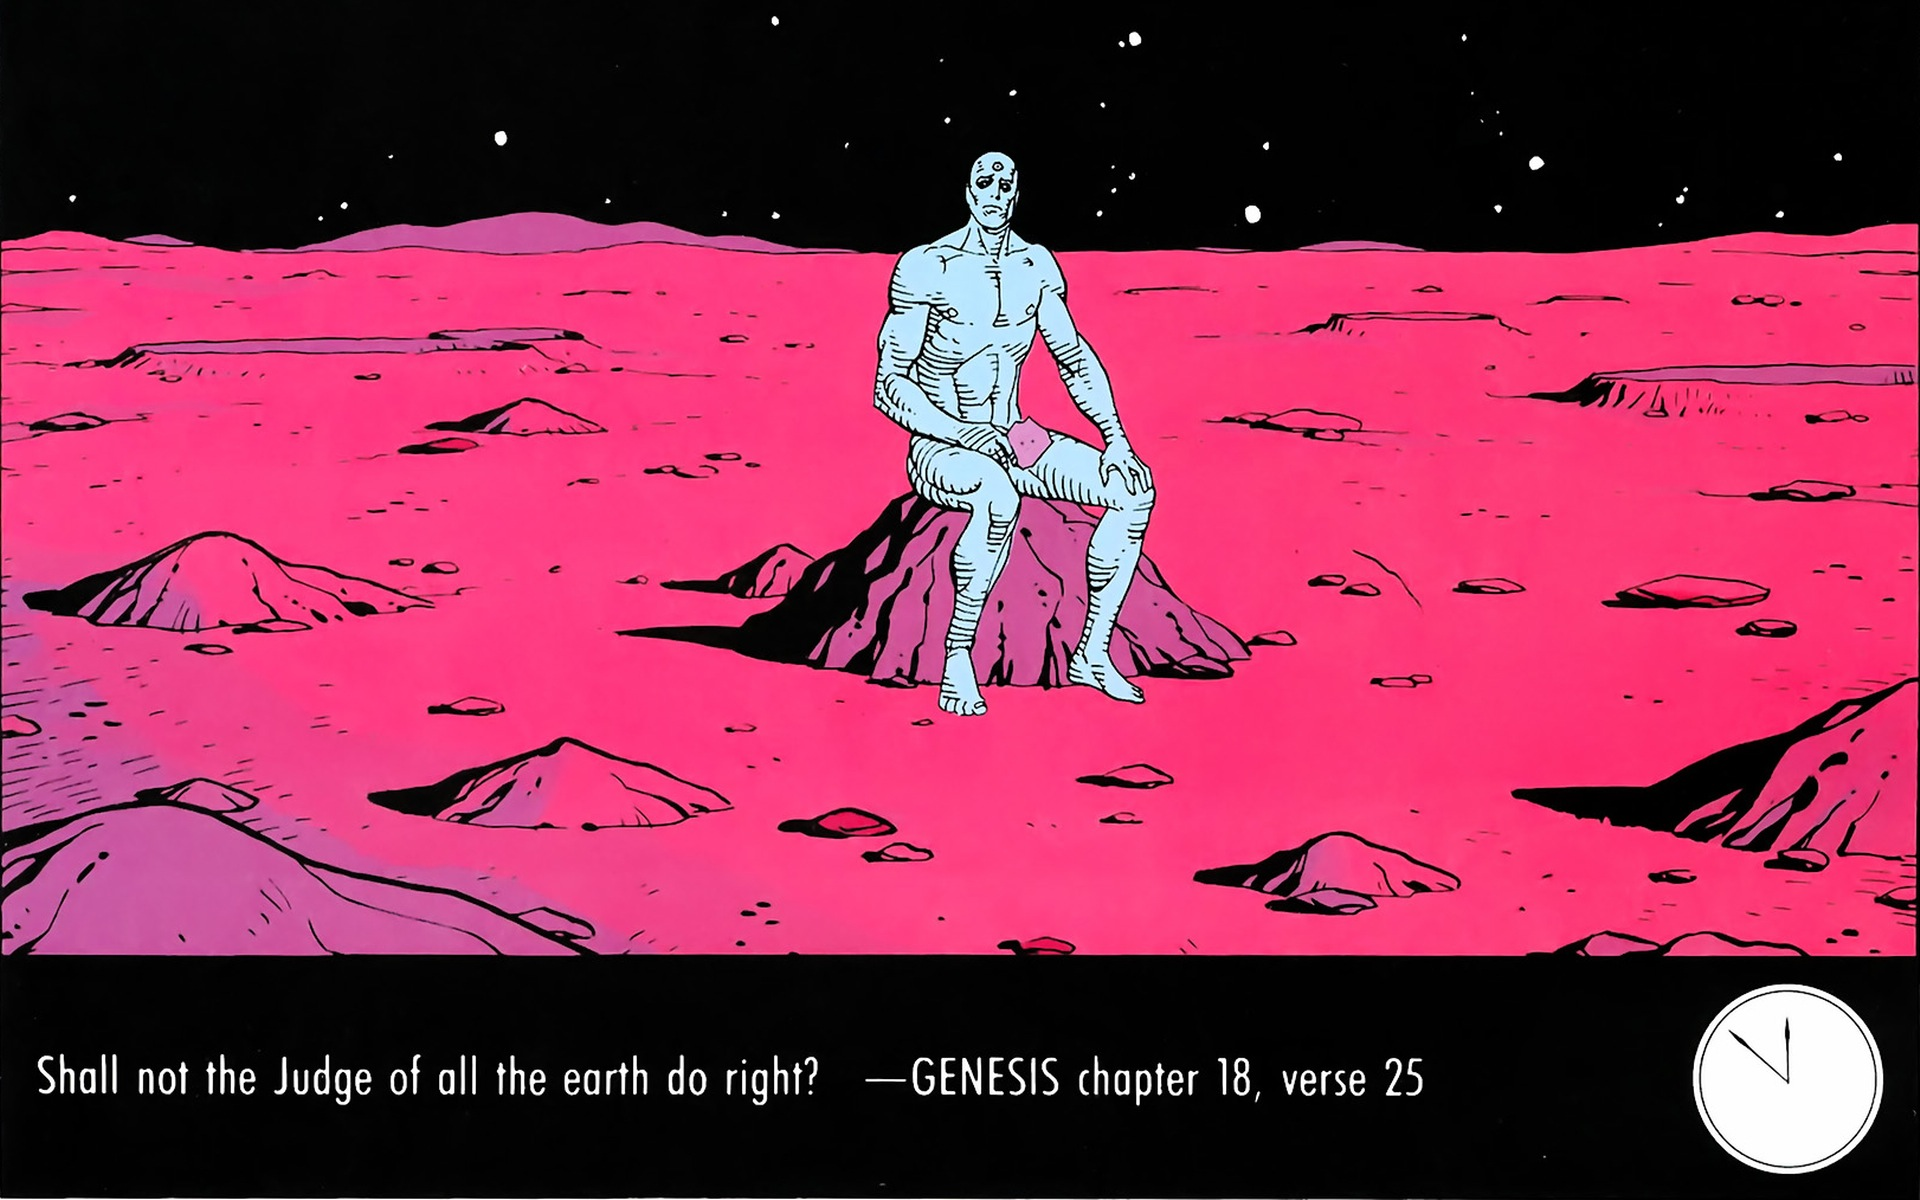 watchmen, dr. manhattan - free wallpaper / wallpaperjam